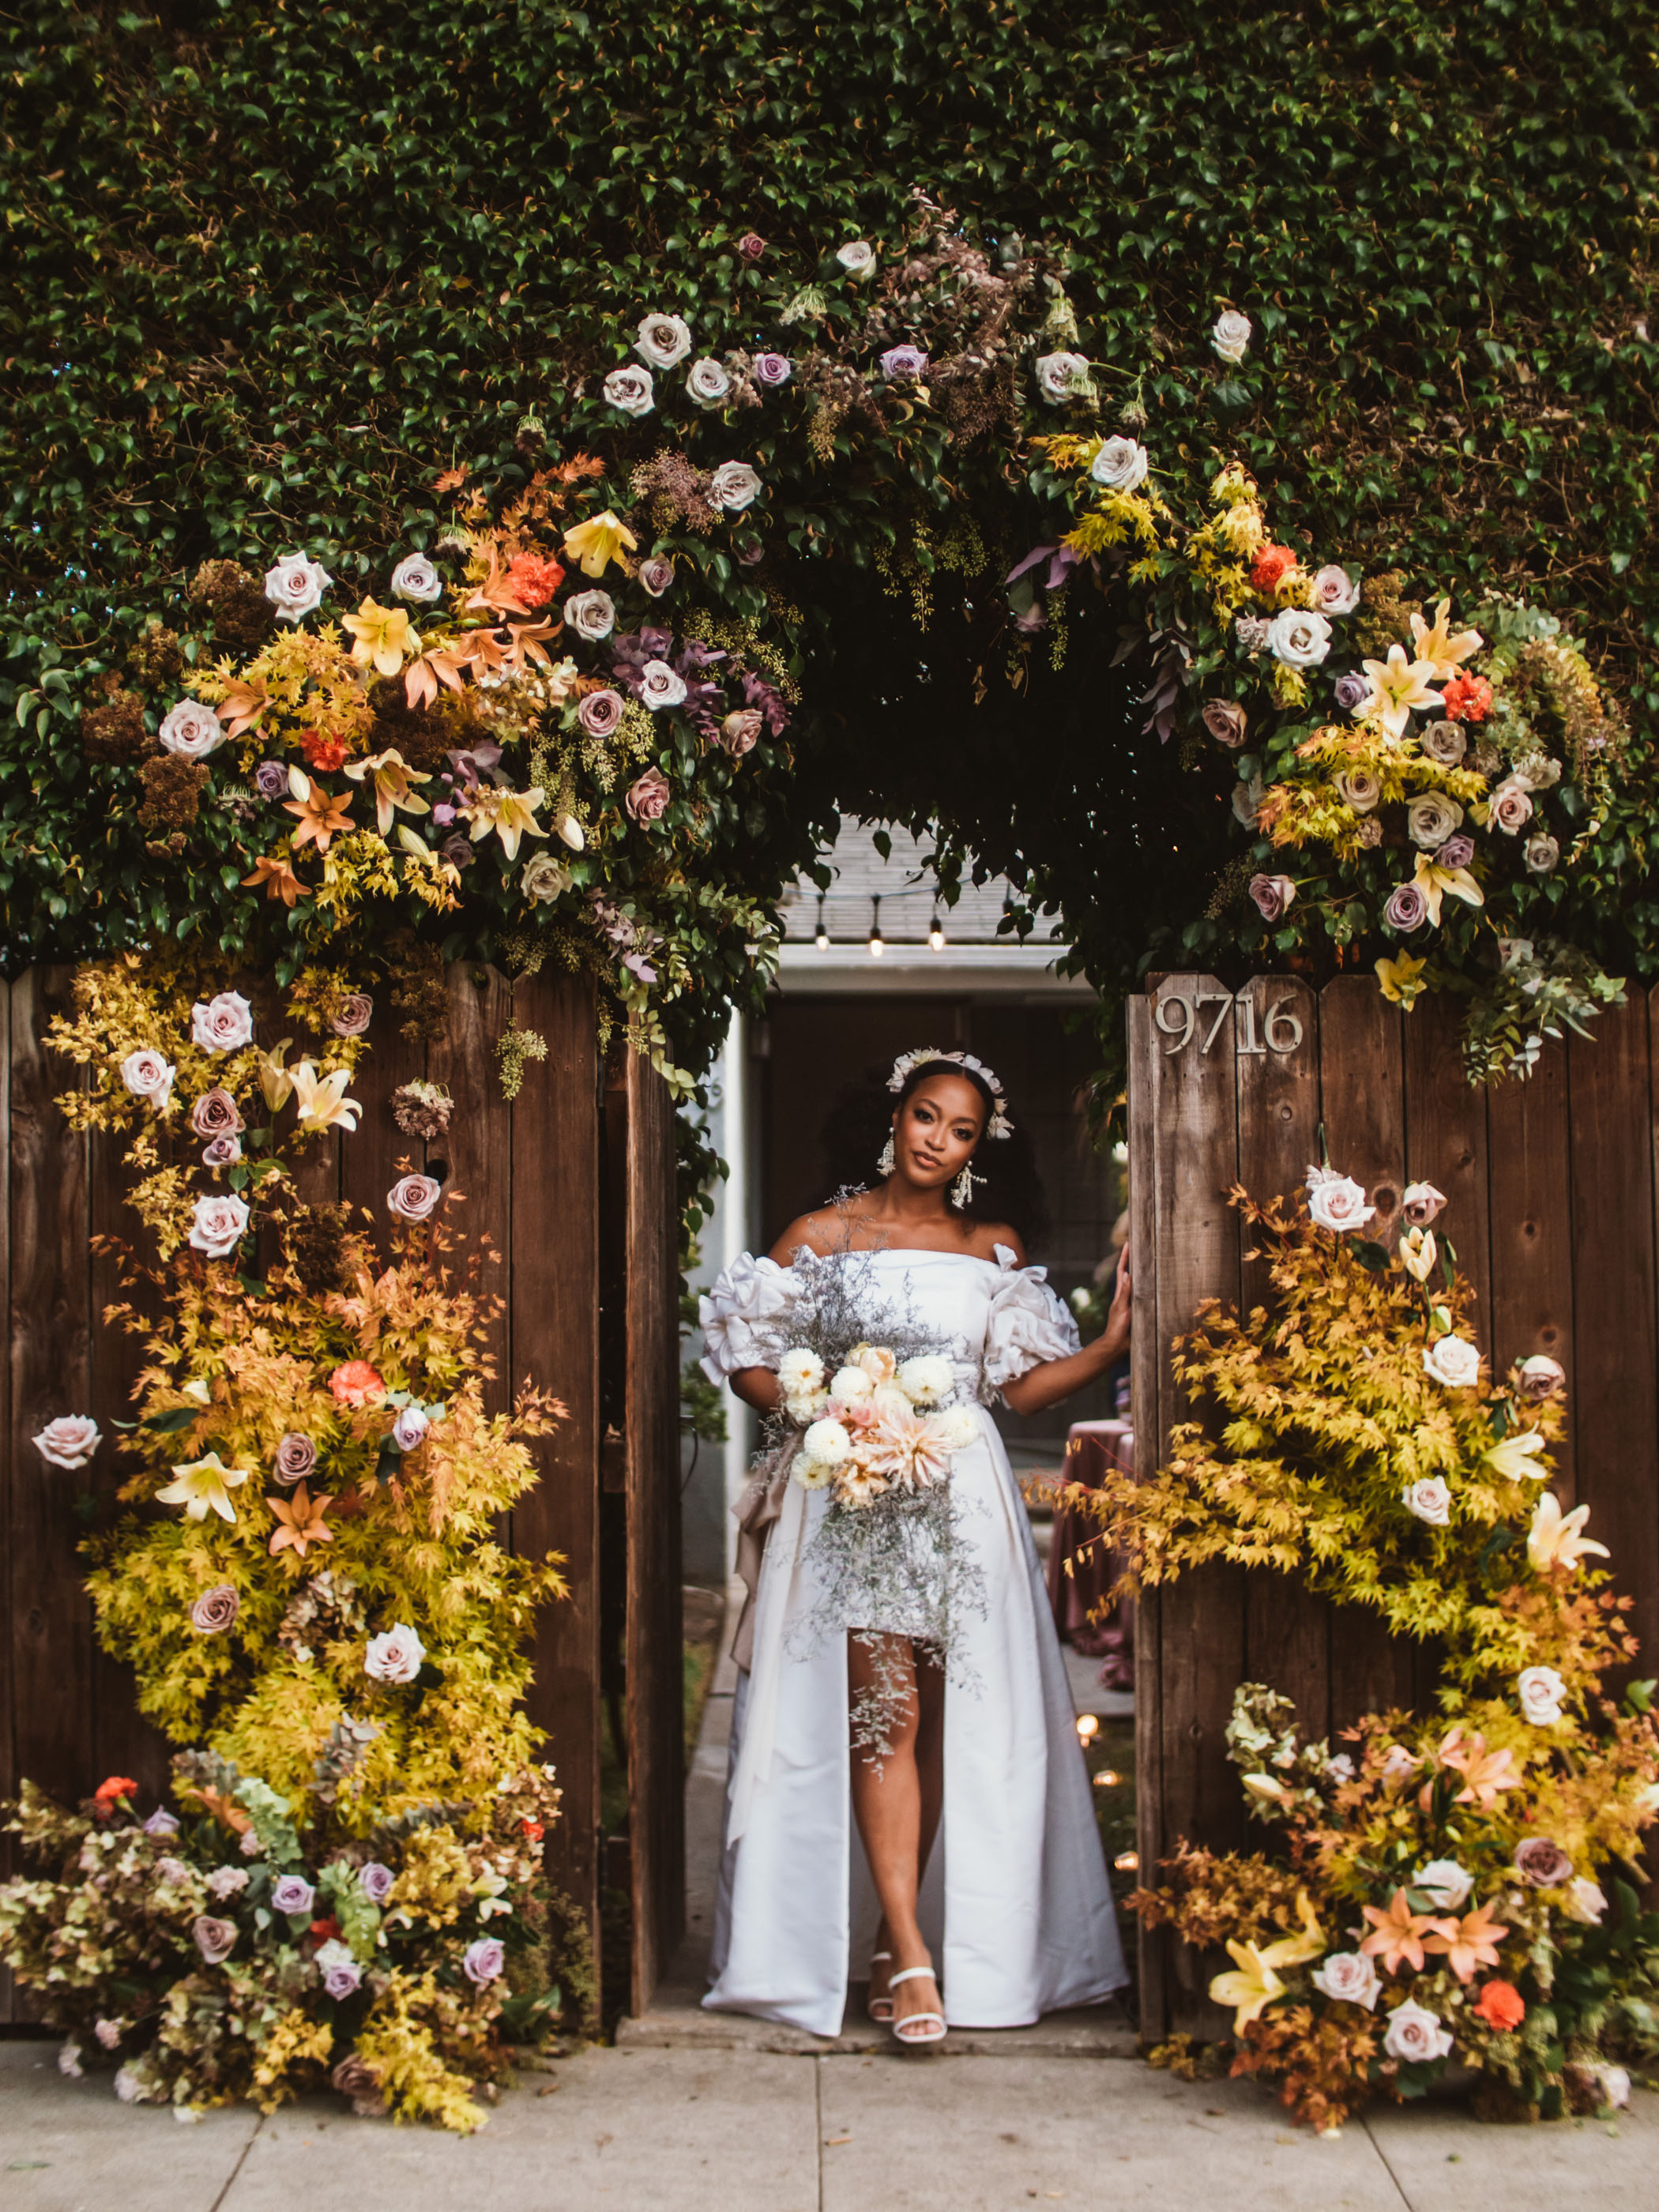 Bride in a high-low wedding gown with off the shoulder sleeves and a floral headpiece